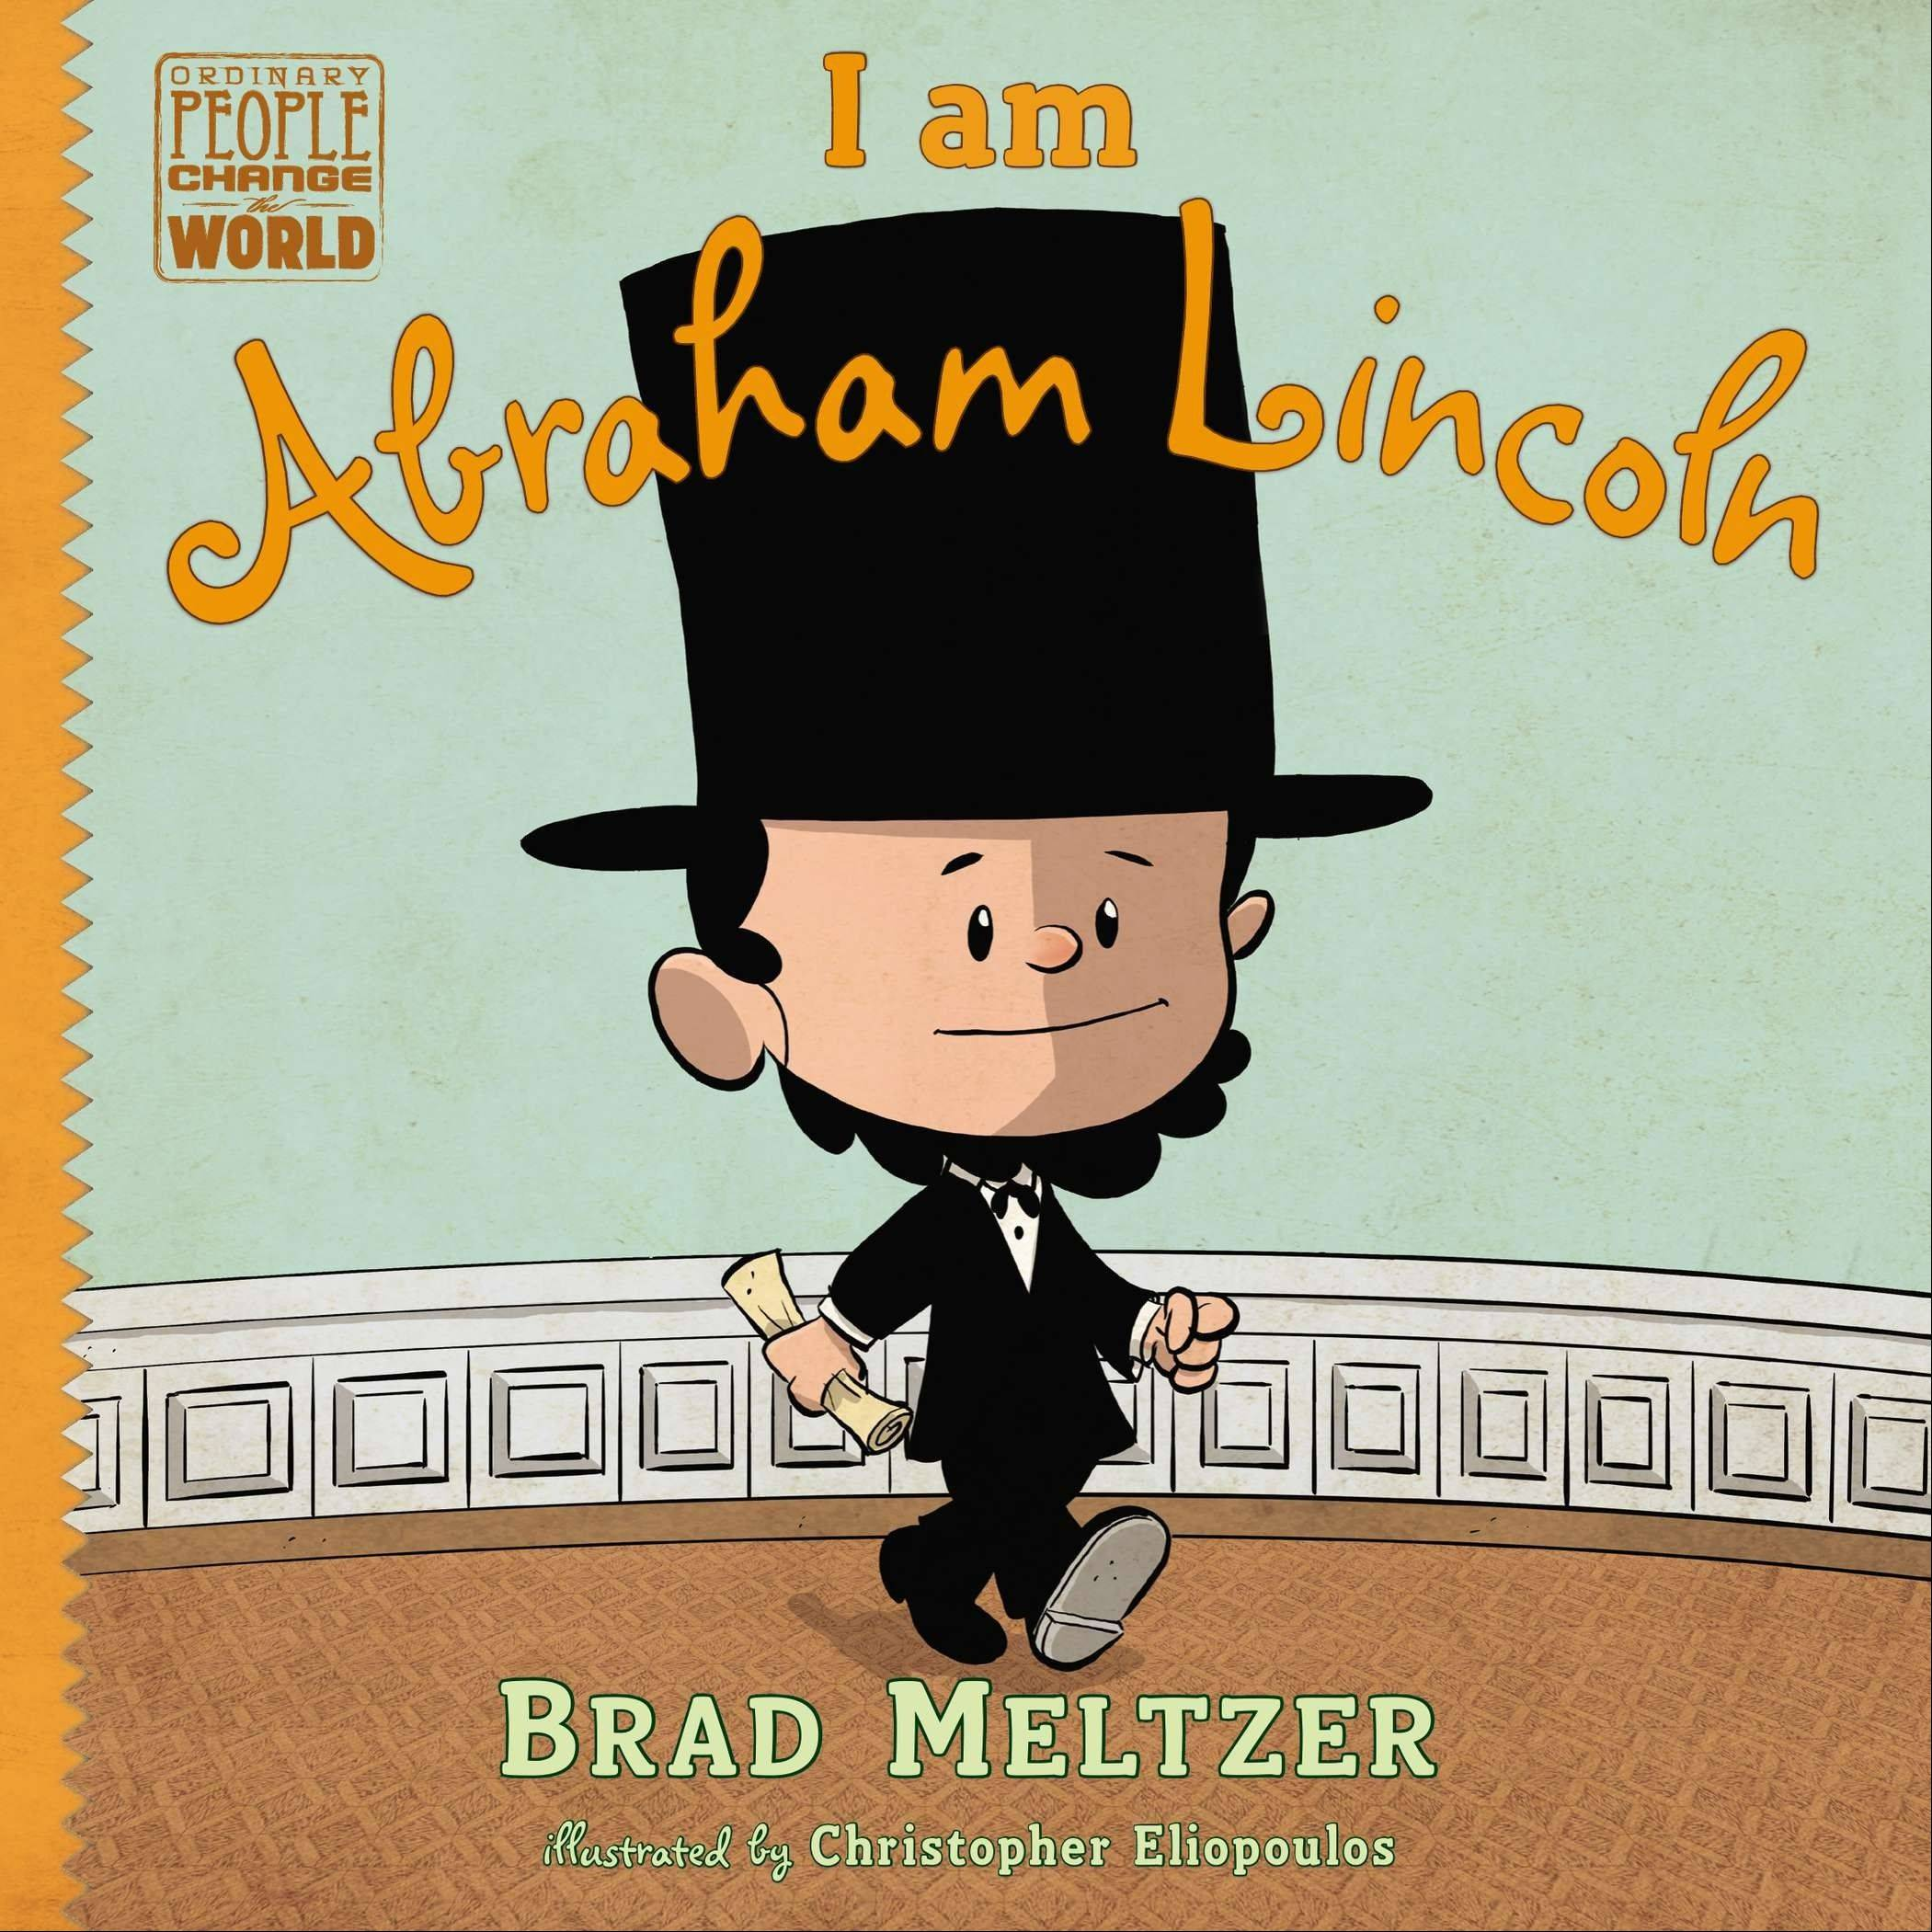 """I am Abraham Lincoln"" by Brad Meltzer"